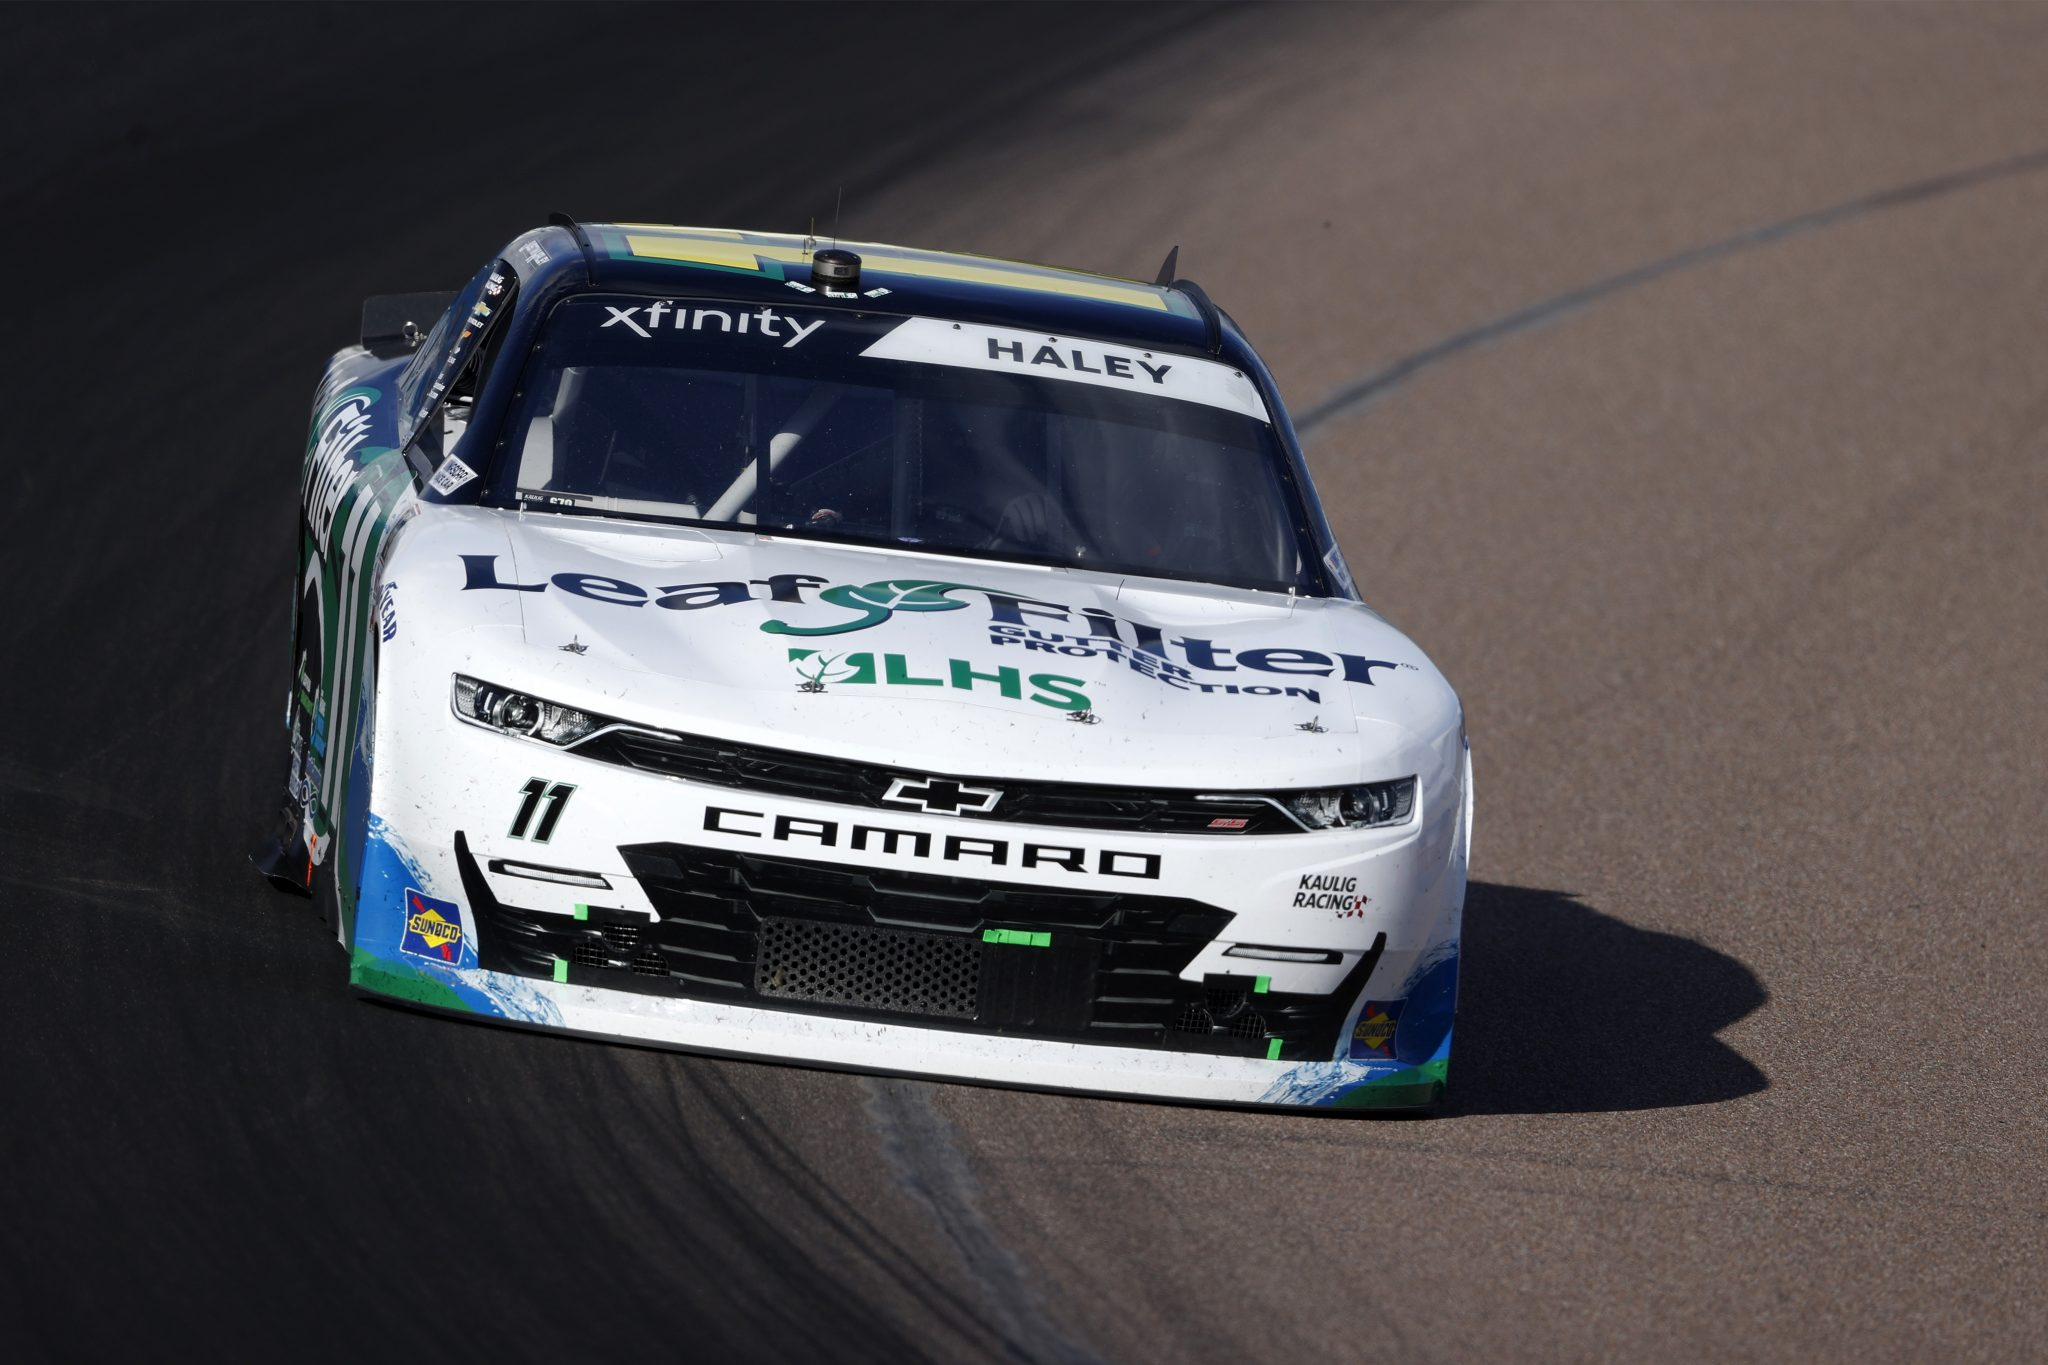 AVONDALE, ARIZONA - MARCH 13: Justin Haley, driver of the #11 LeafFilter Gutter Protection Chevrolet, drives during the NASCAR Xfinity Series Call 811 Before You Dig 200 presented by Arizona 811 at Phoenix Raceway on March 13, 2021 in Avondale, Arizona. (Photo by Christian Petersen/Getty Images) | Getty Images